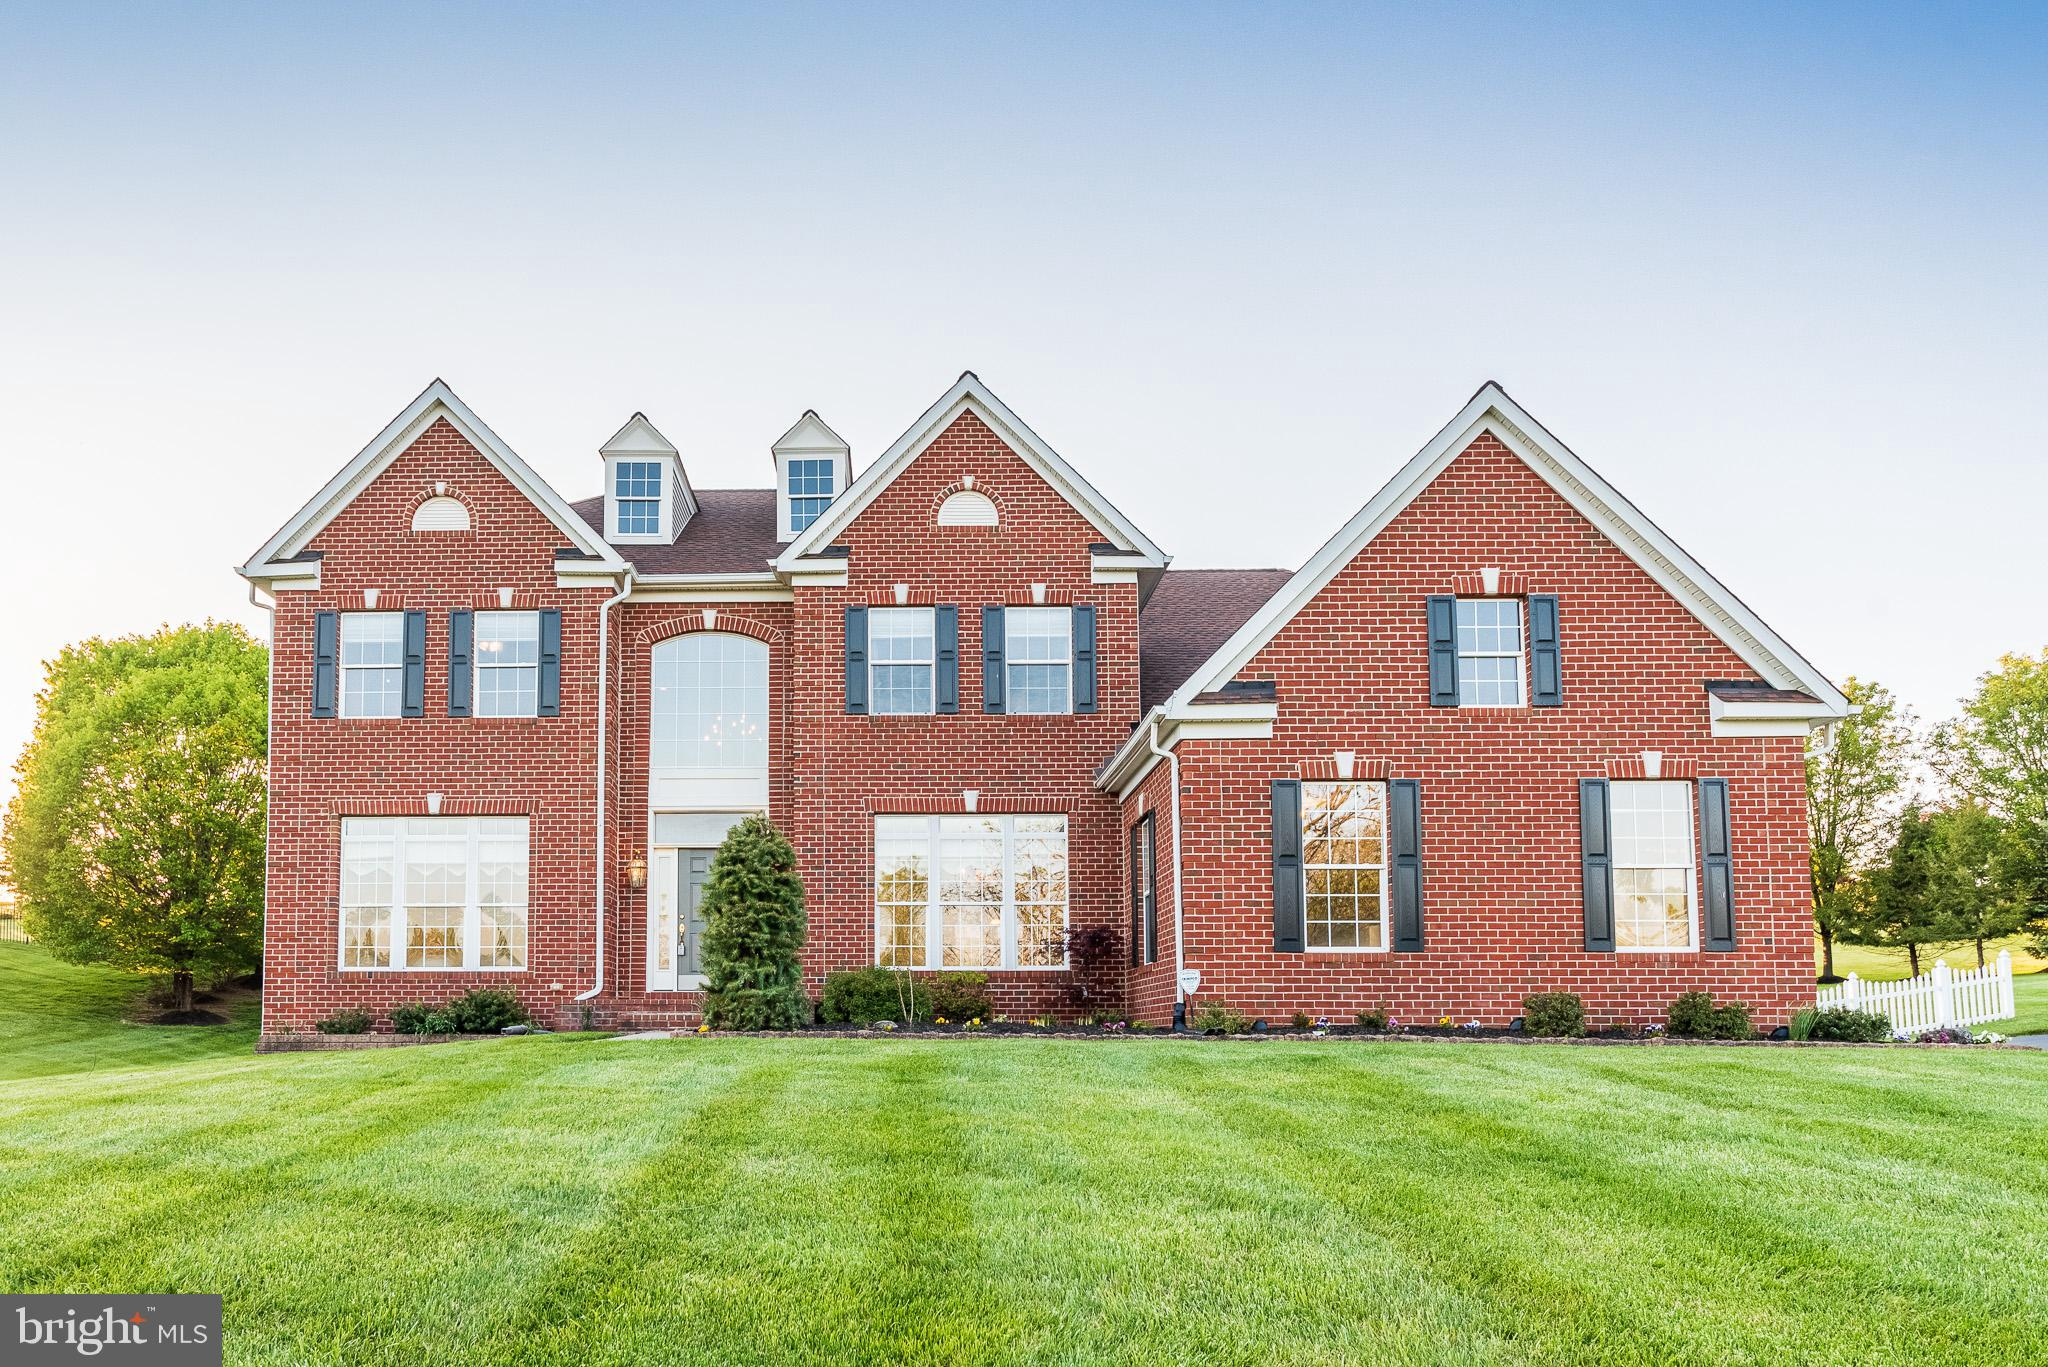 1110 Saddle View Way, Forest Hill, MD 21050